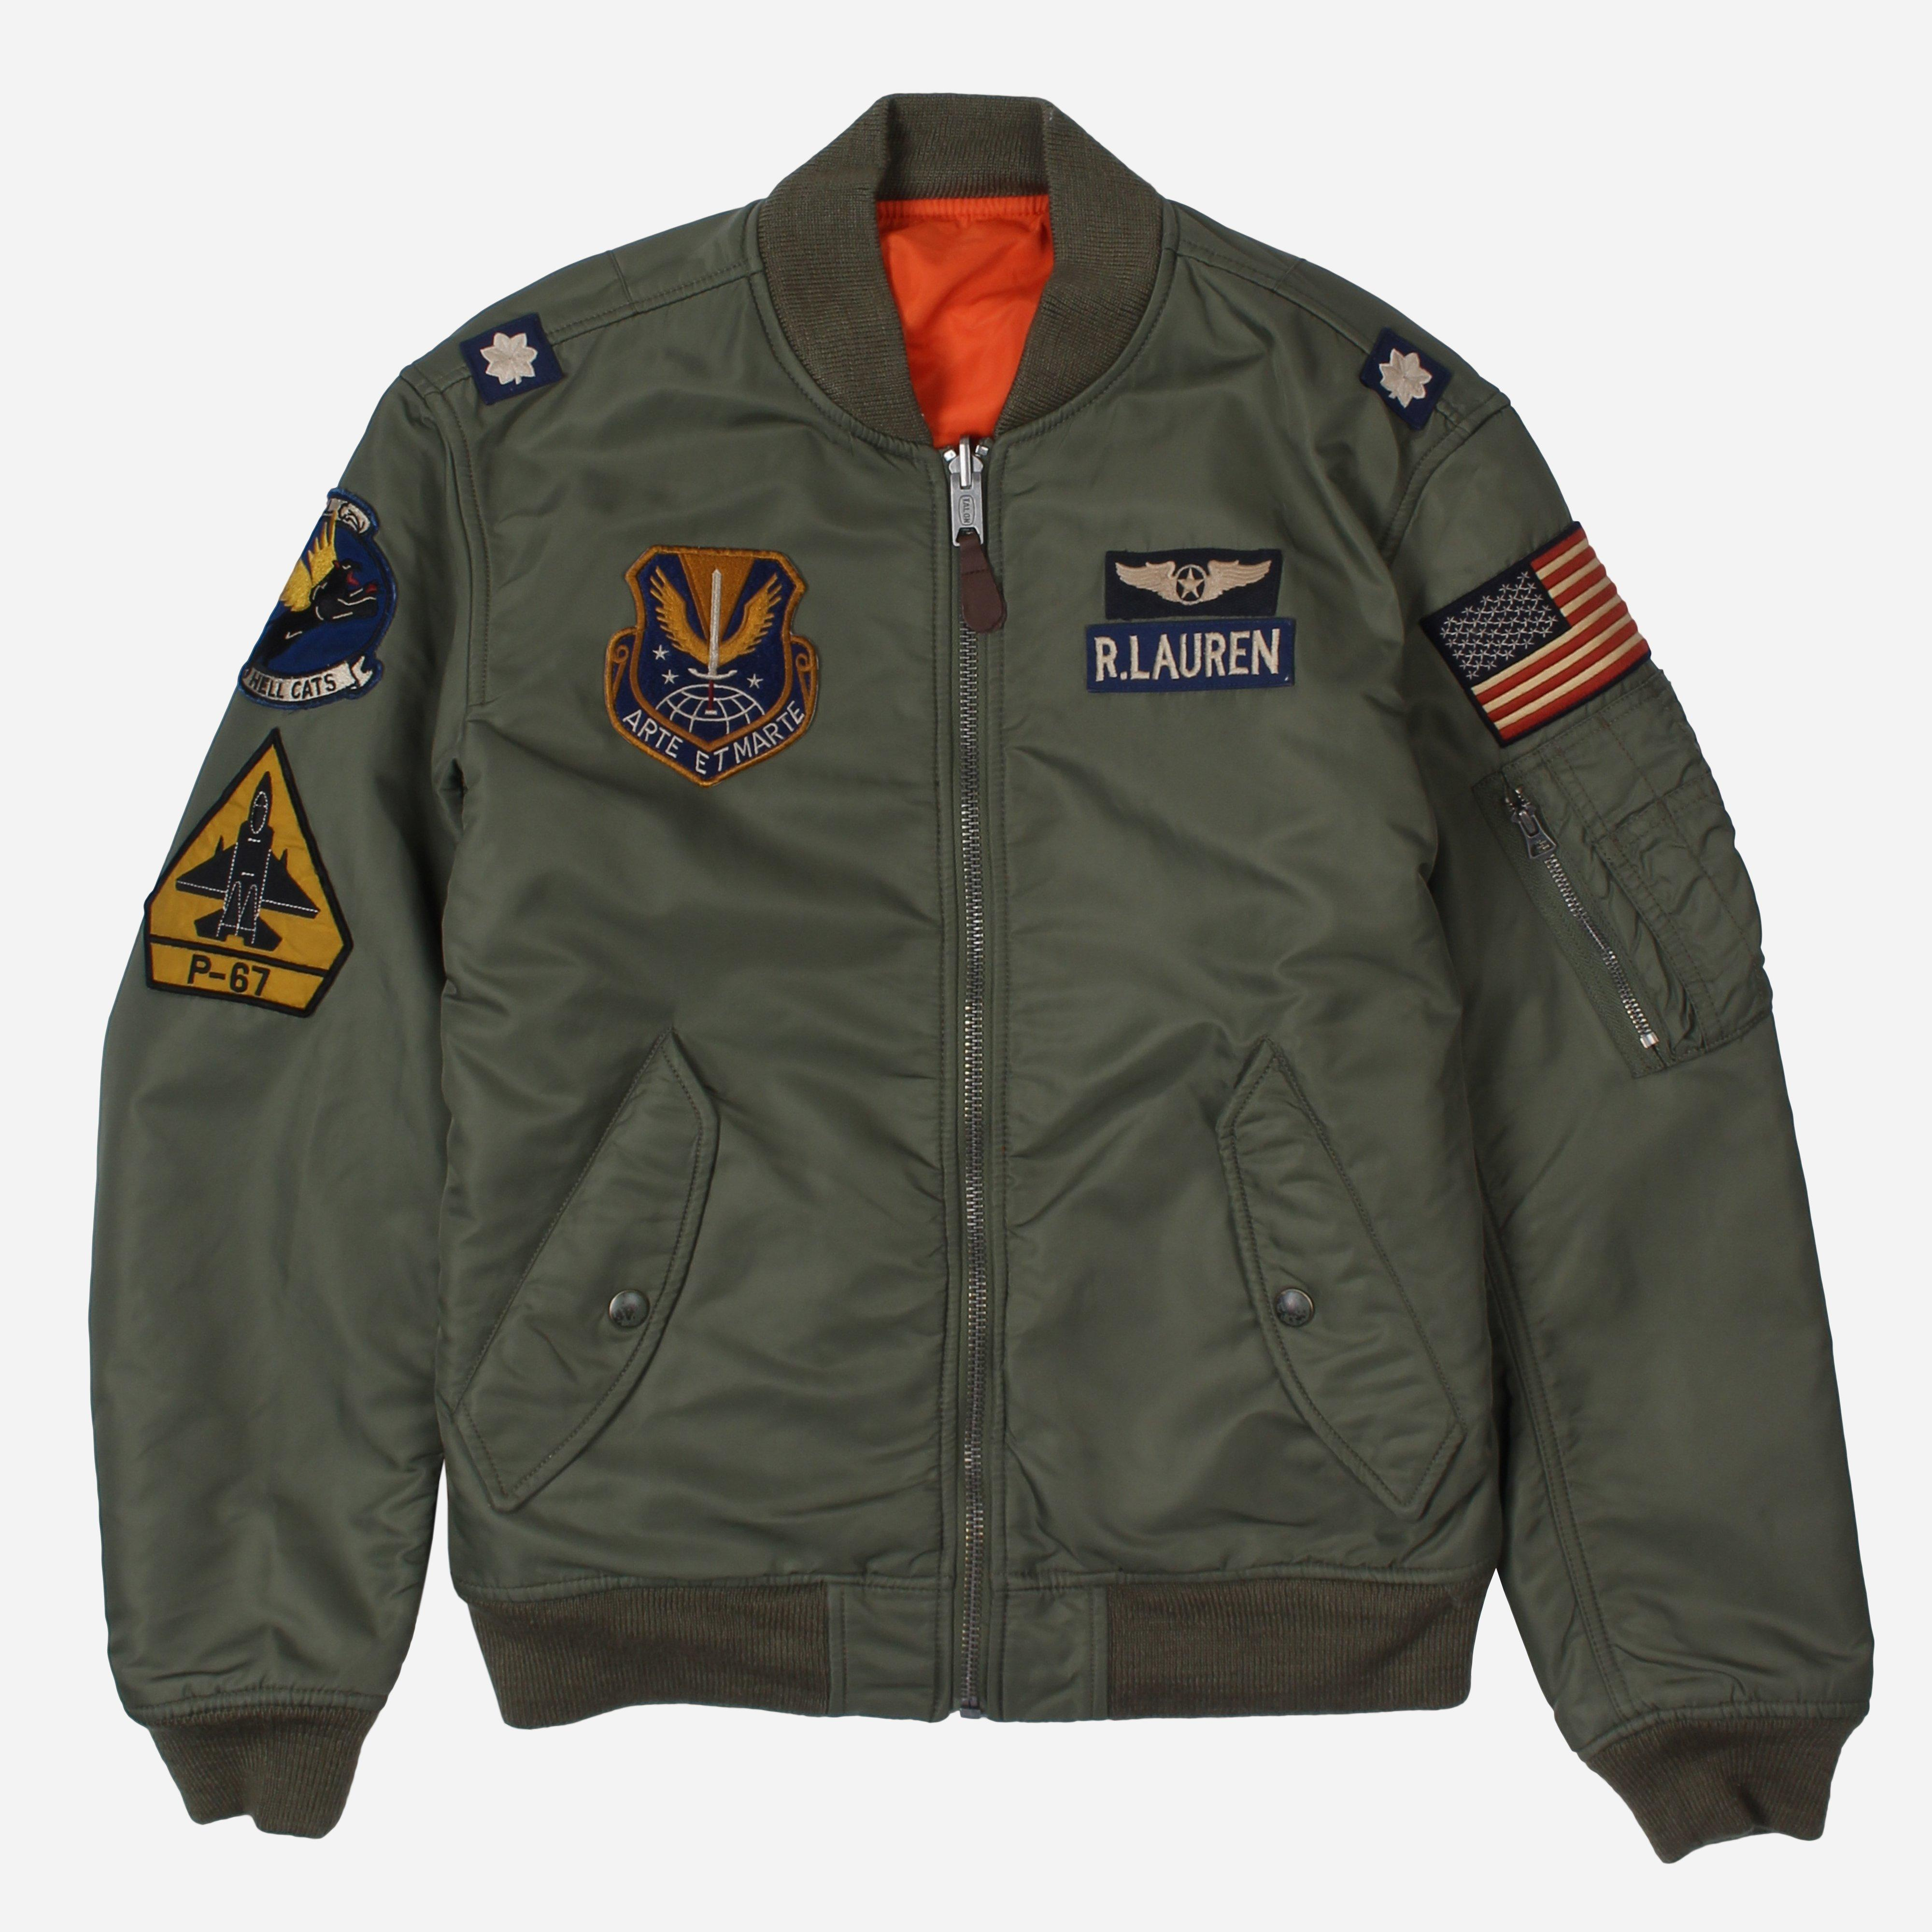 Arte Et Marte Dimicandum Polo Ralph Lauren Bomber Jacket The Hip Store